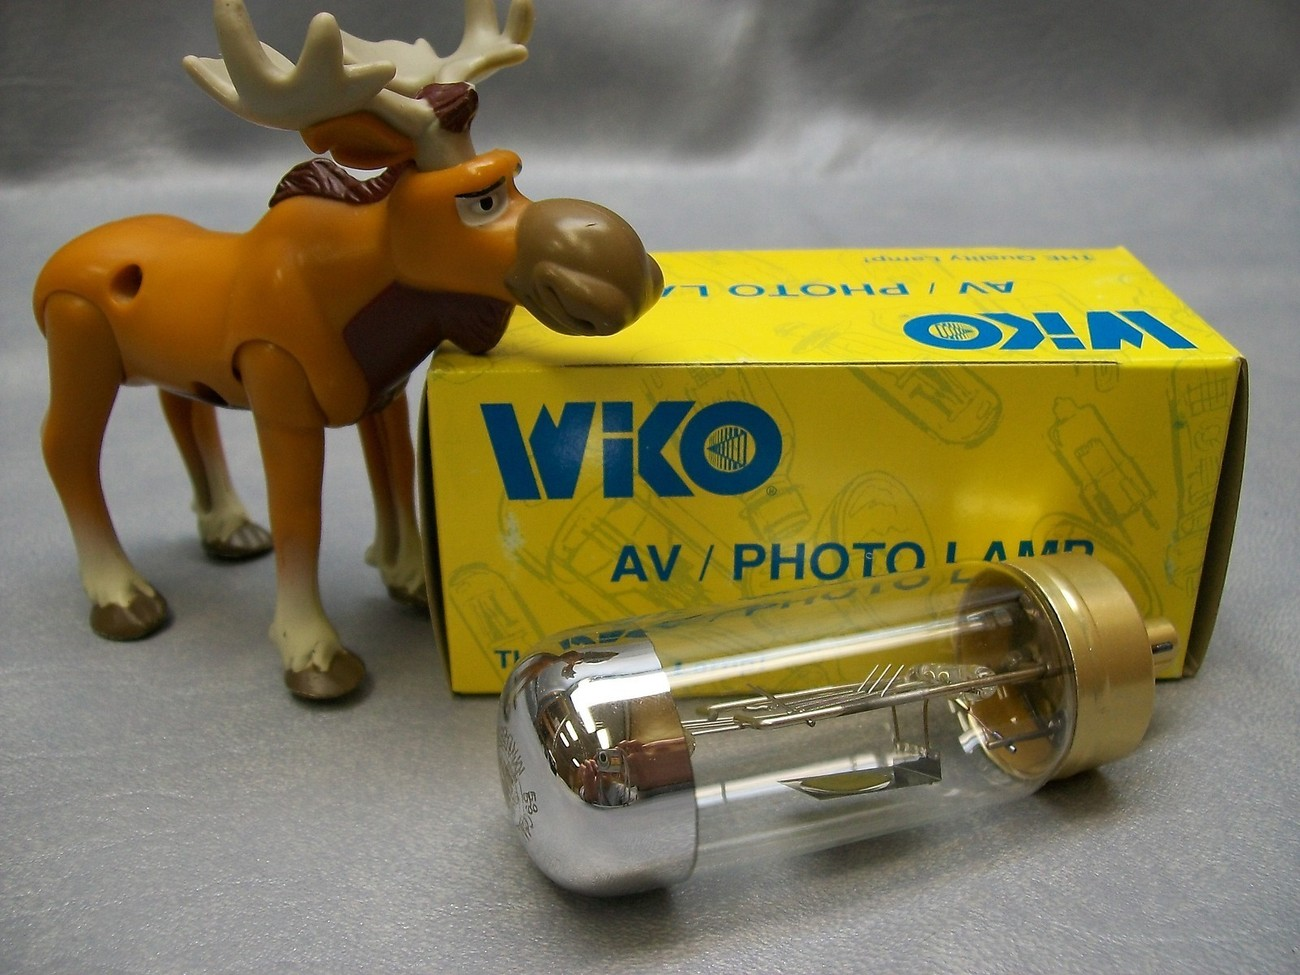 Wiko CAL Projector Lamp Bulb 300w 120v